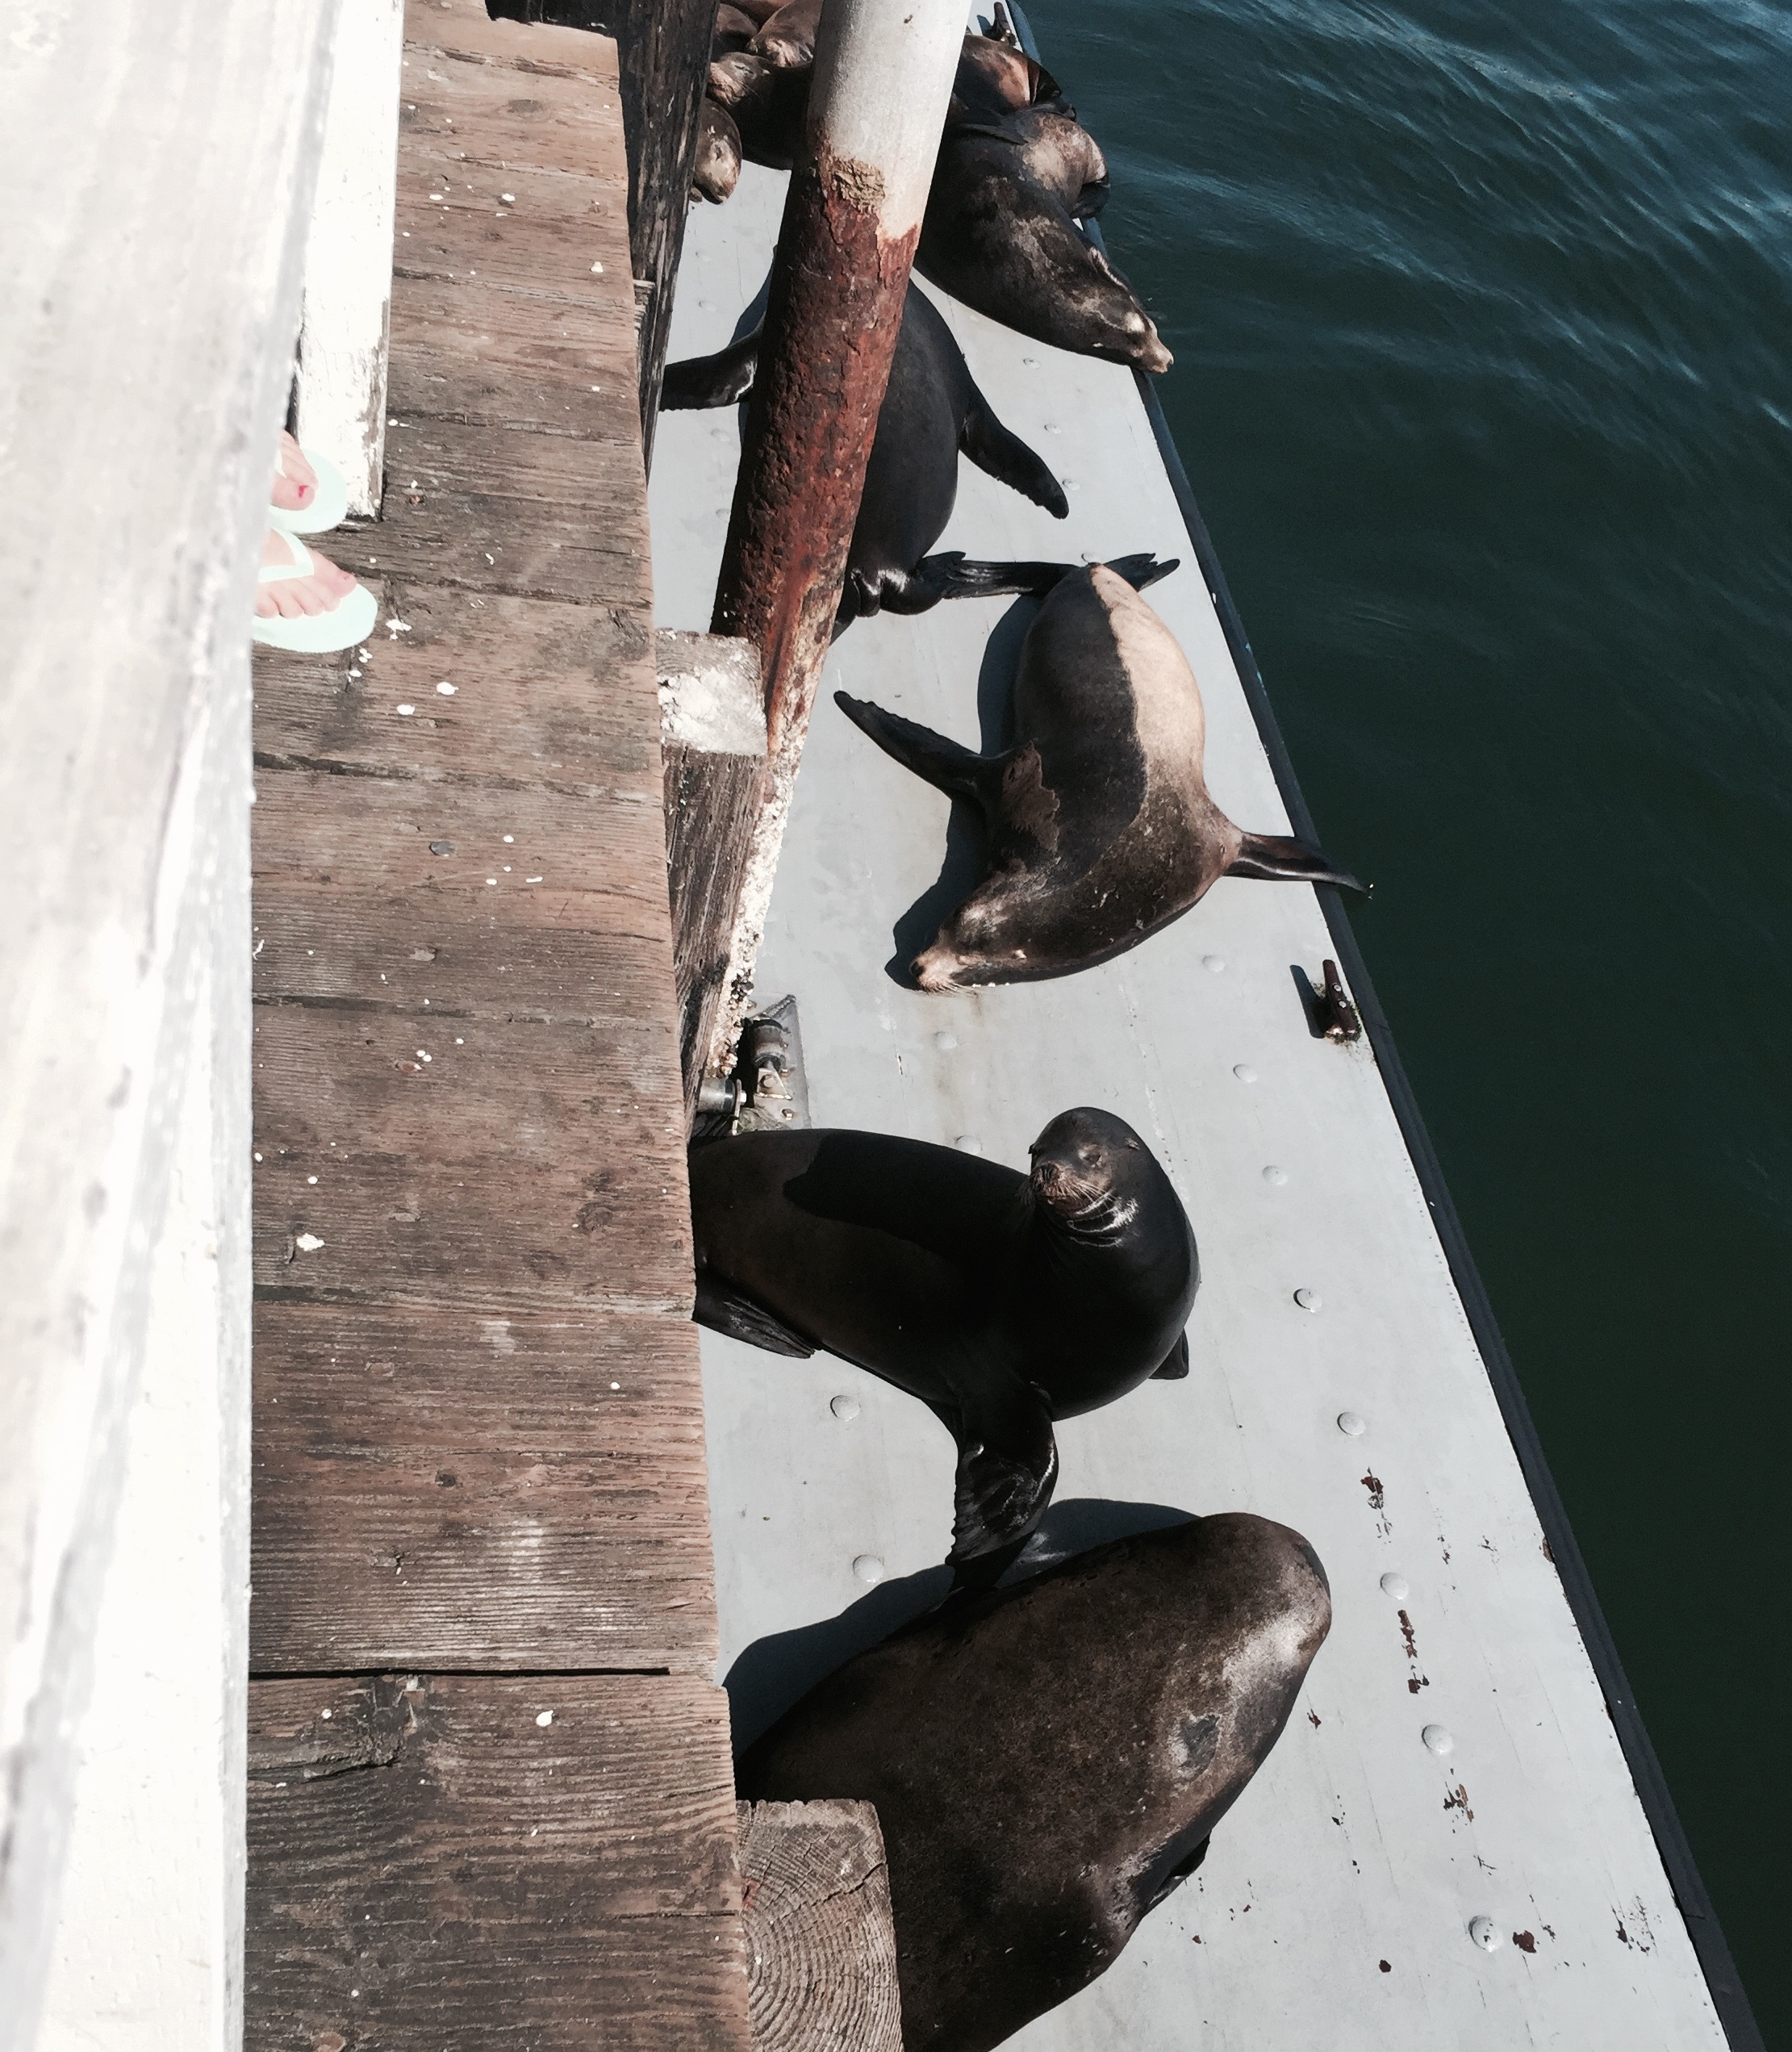 Sea lions cheered me on after a four mile run down the wharf.